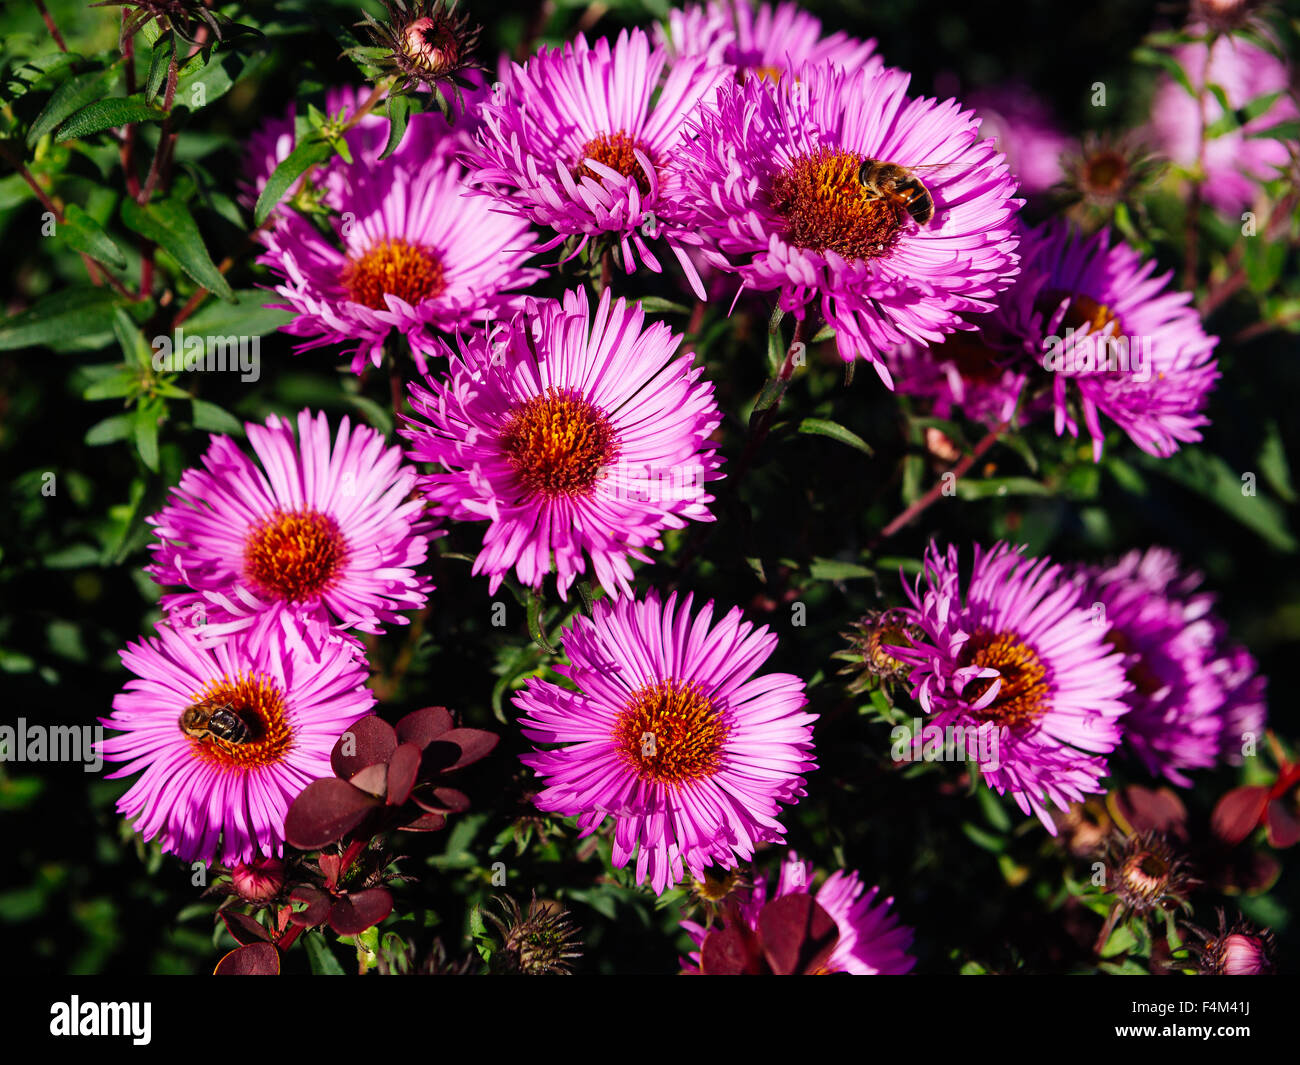 Autumn flower pattern from lilac daisies - Stock Image